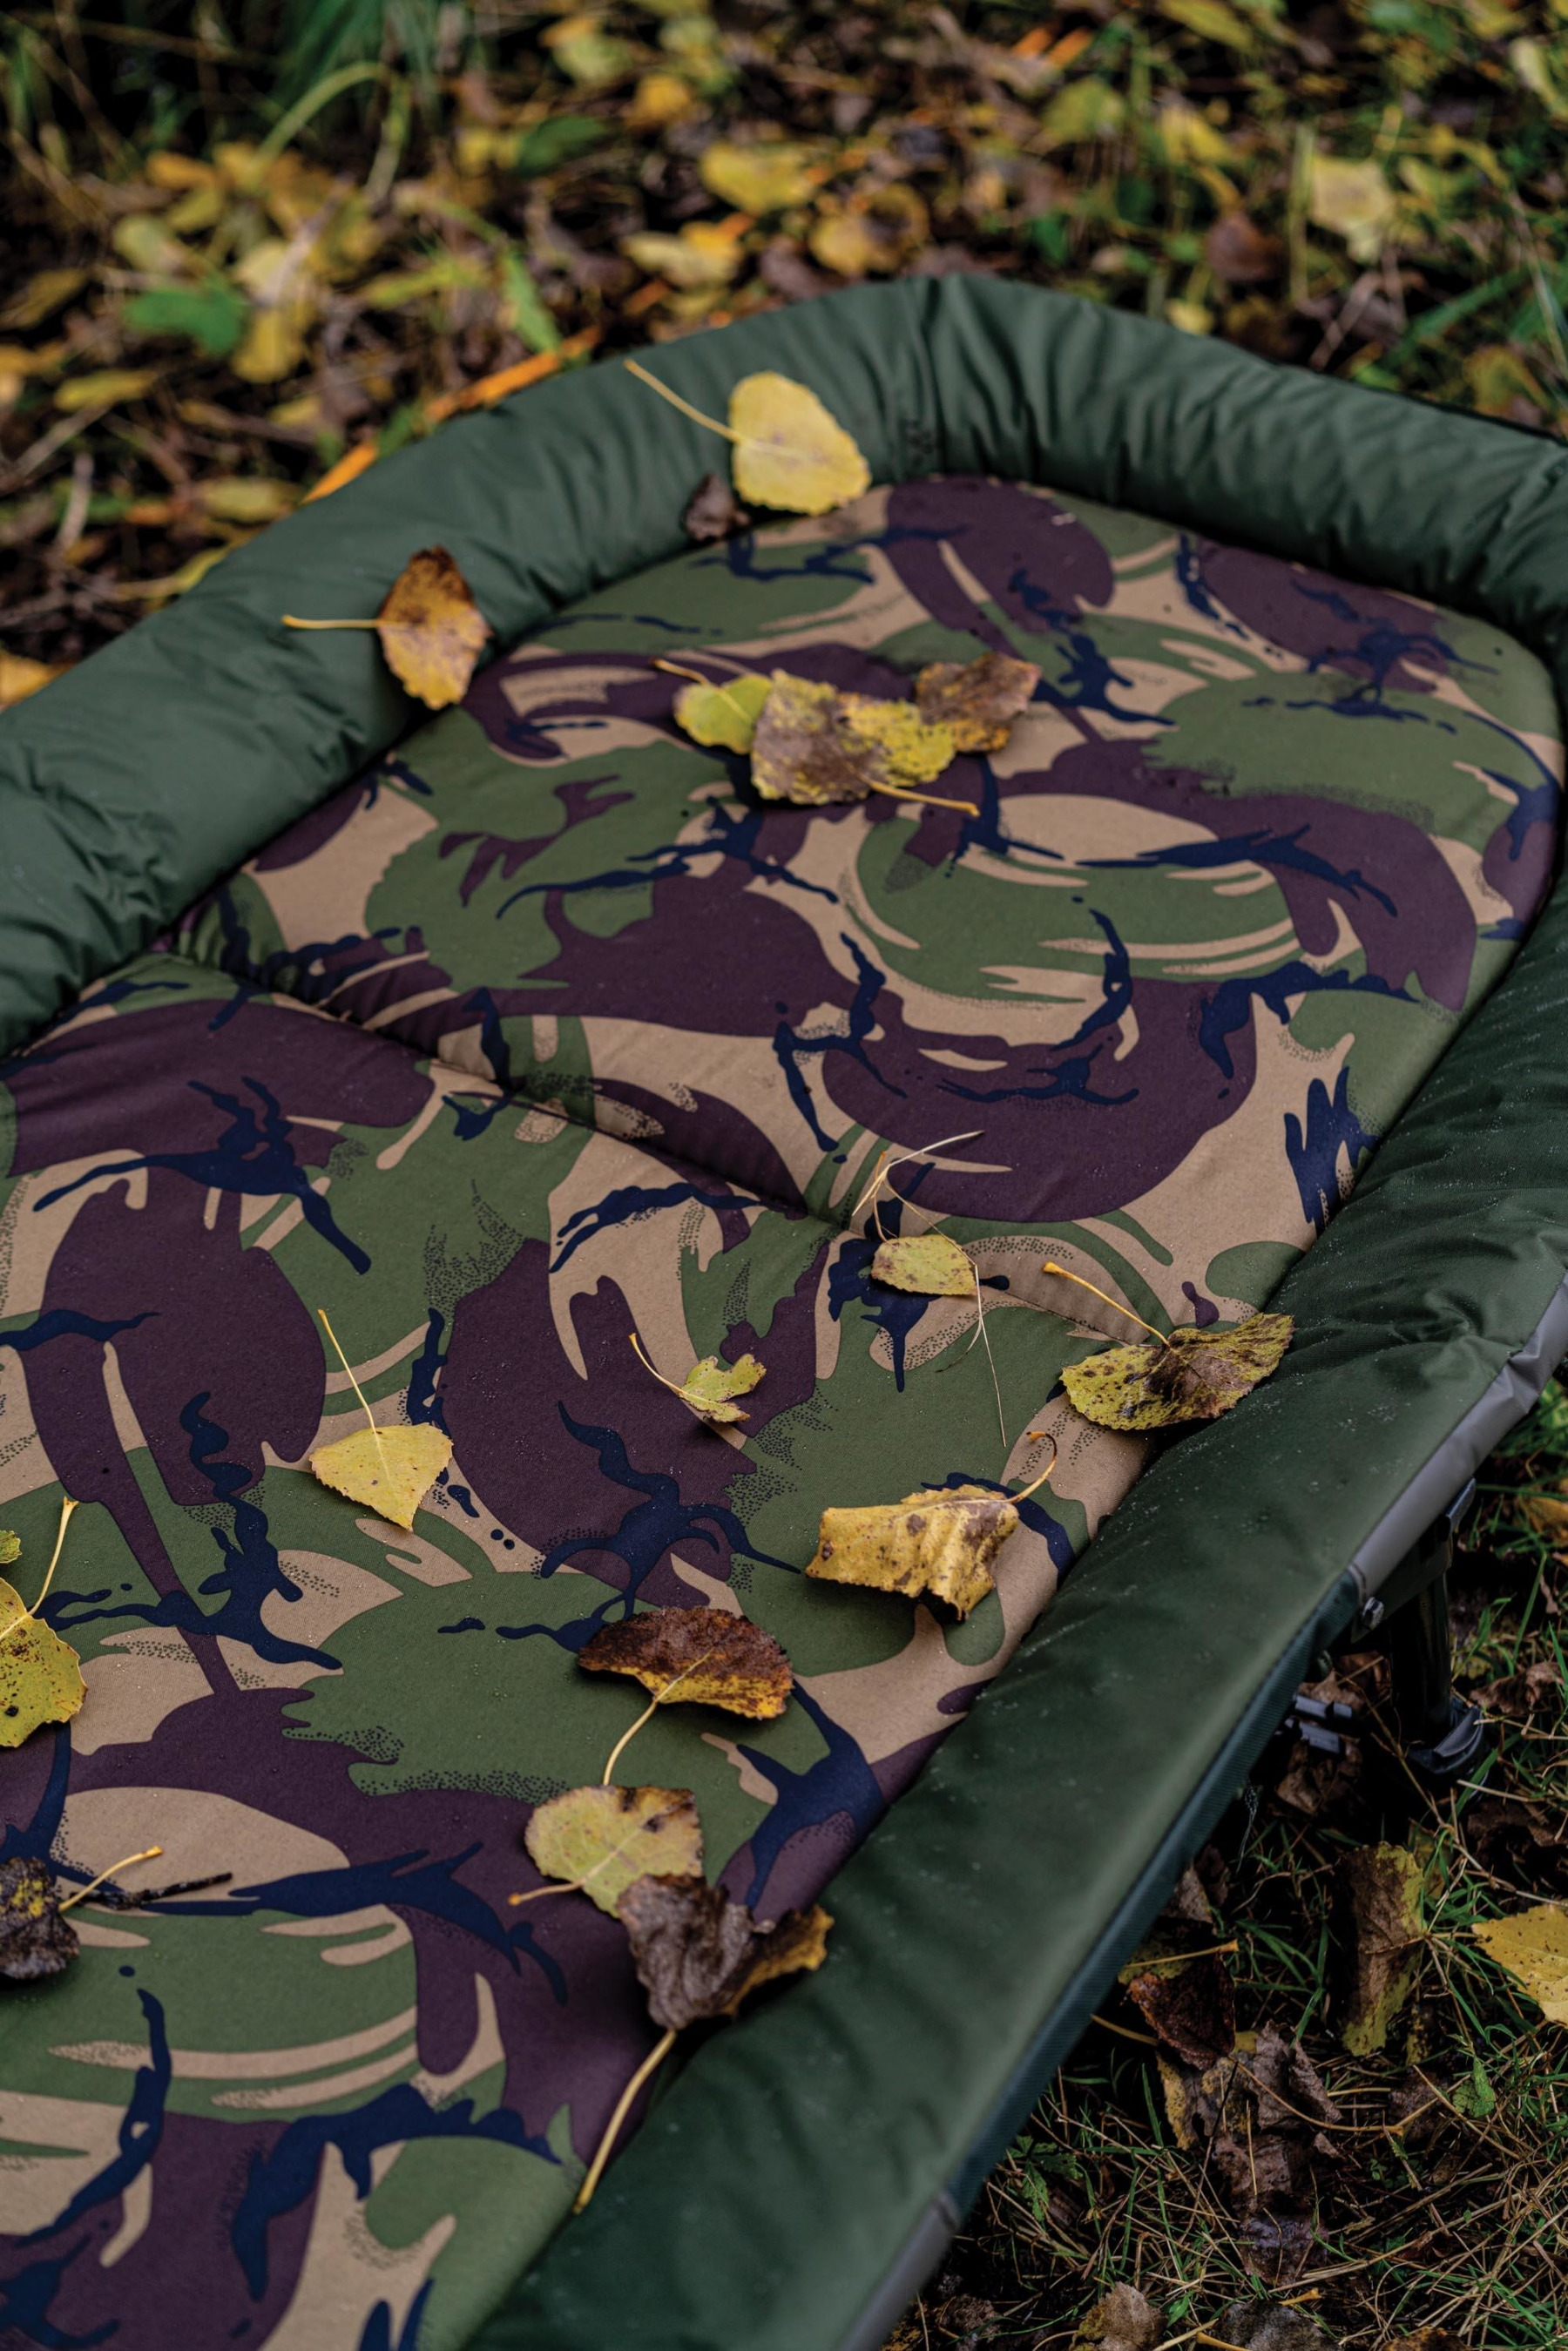 The well-padded mattress with a DPM camo main section looks great